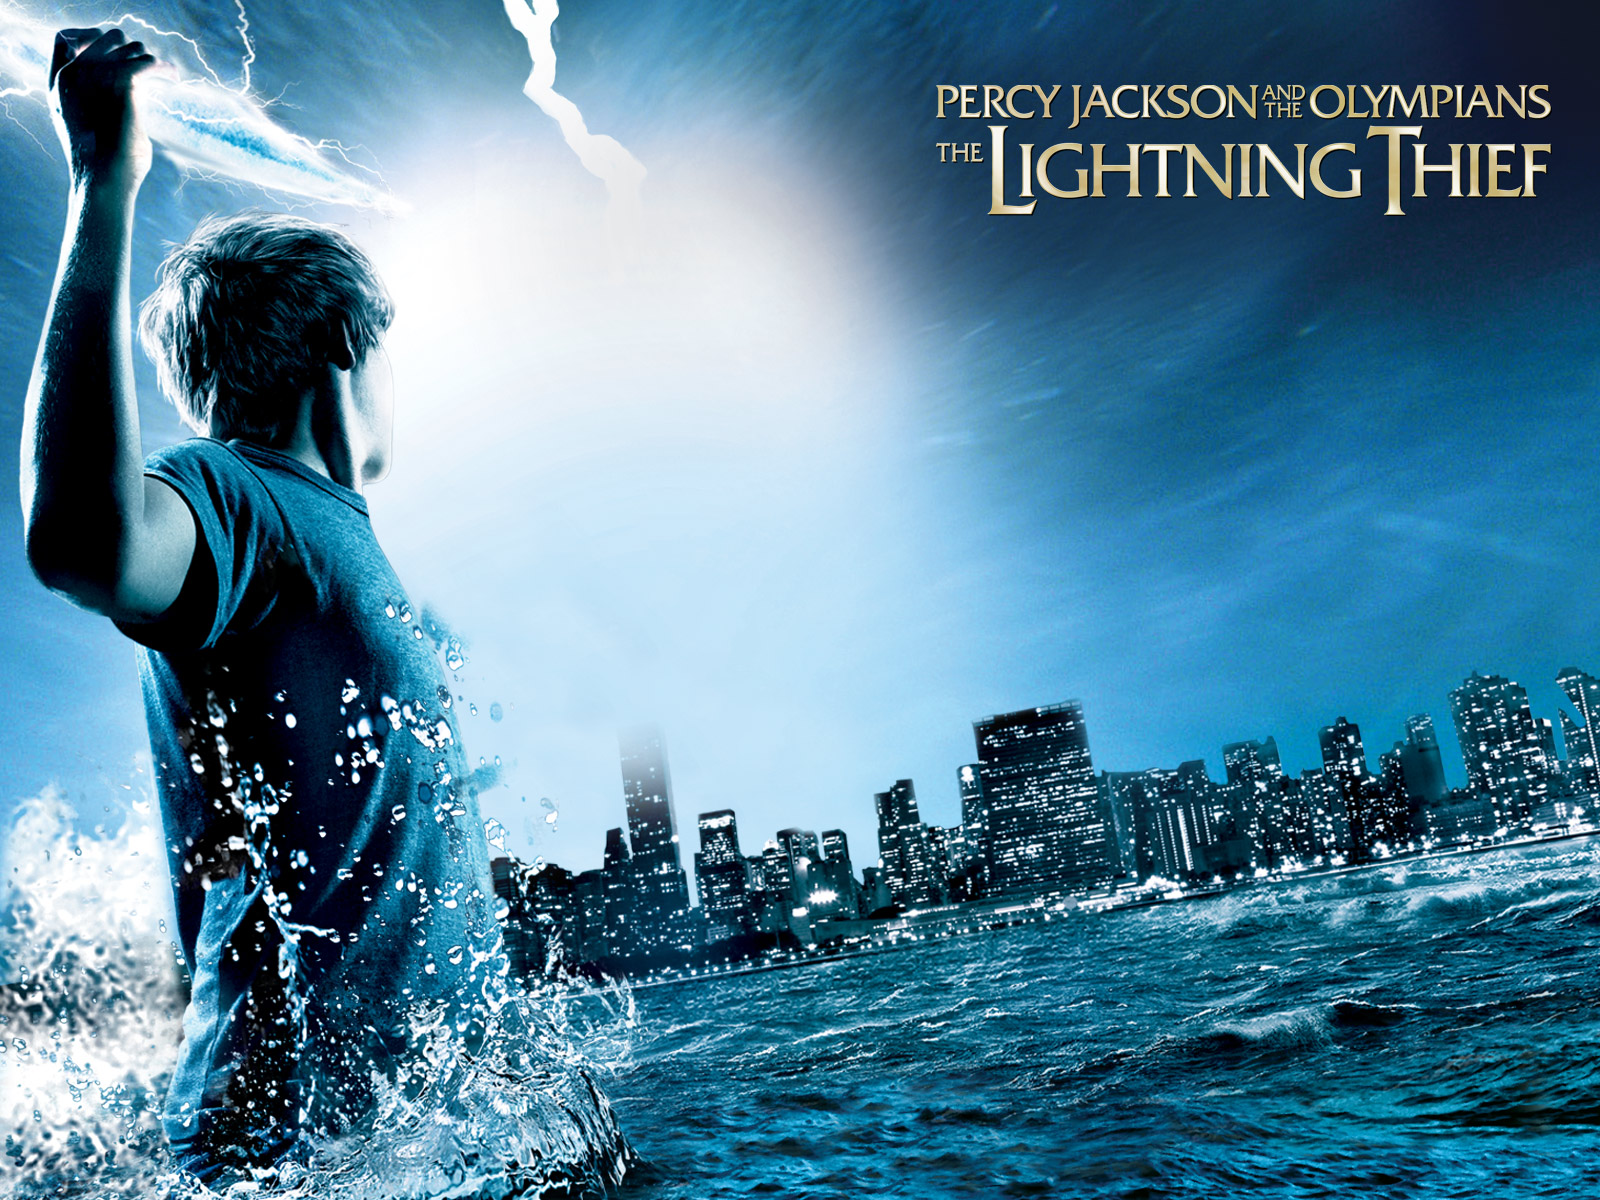 Percy jackson and the olympians the lightning thief 2010 52in14 the film focuses as you may have guessed on the eponymous percy jackson logan lerman a teenage boy with adhd and dyslexia who coasts through school izmirmasajfo